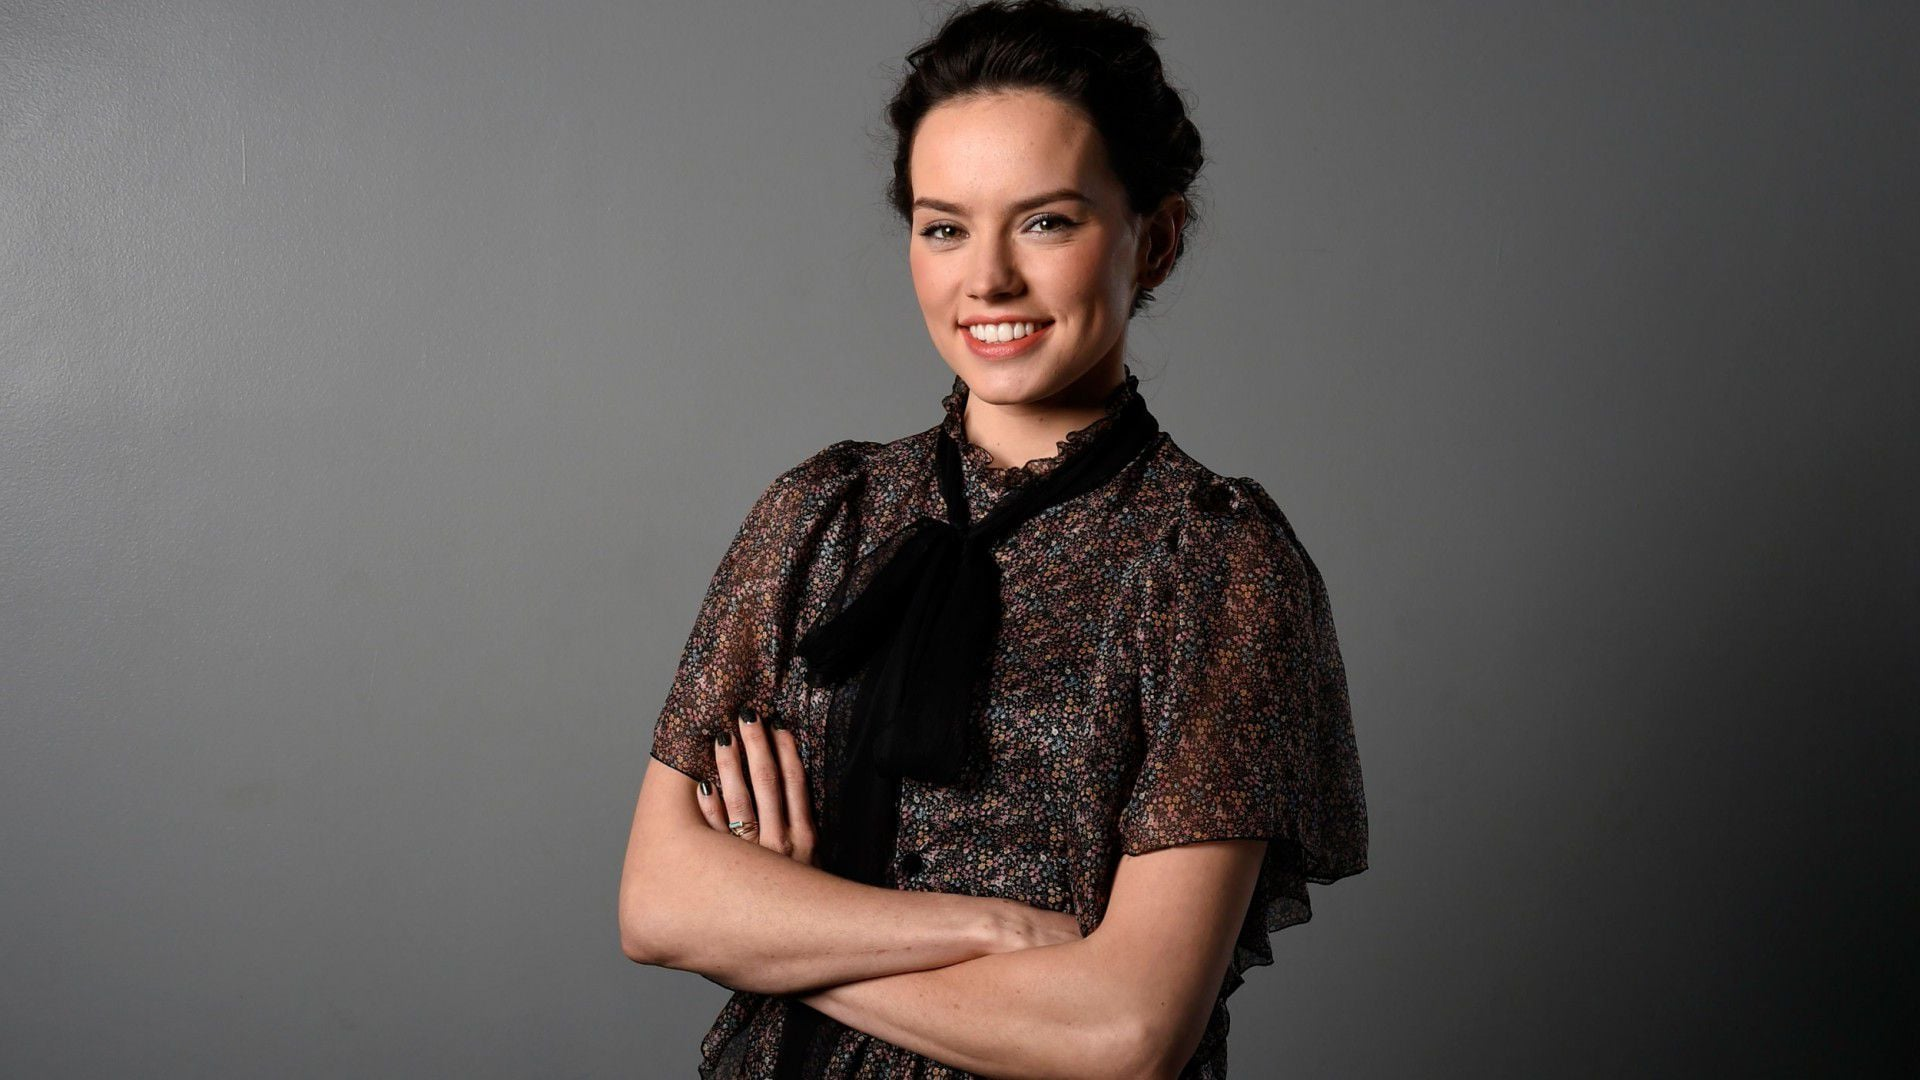 Funny Daisy Ridley pictures